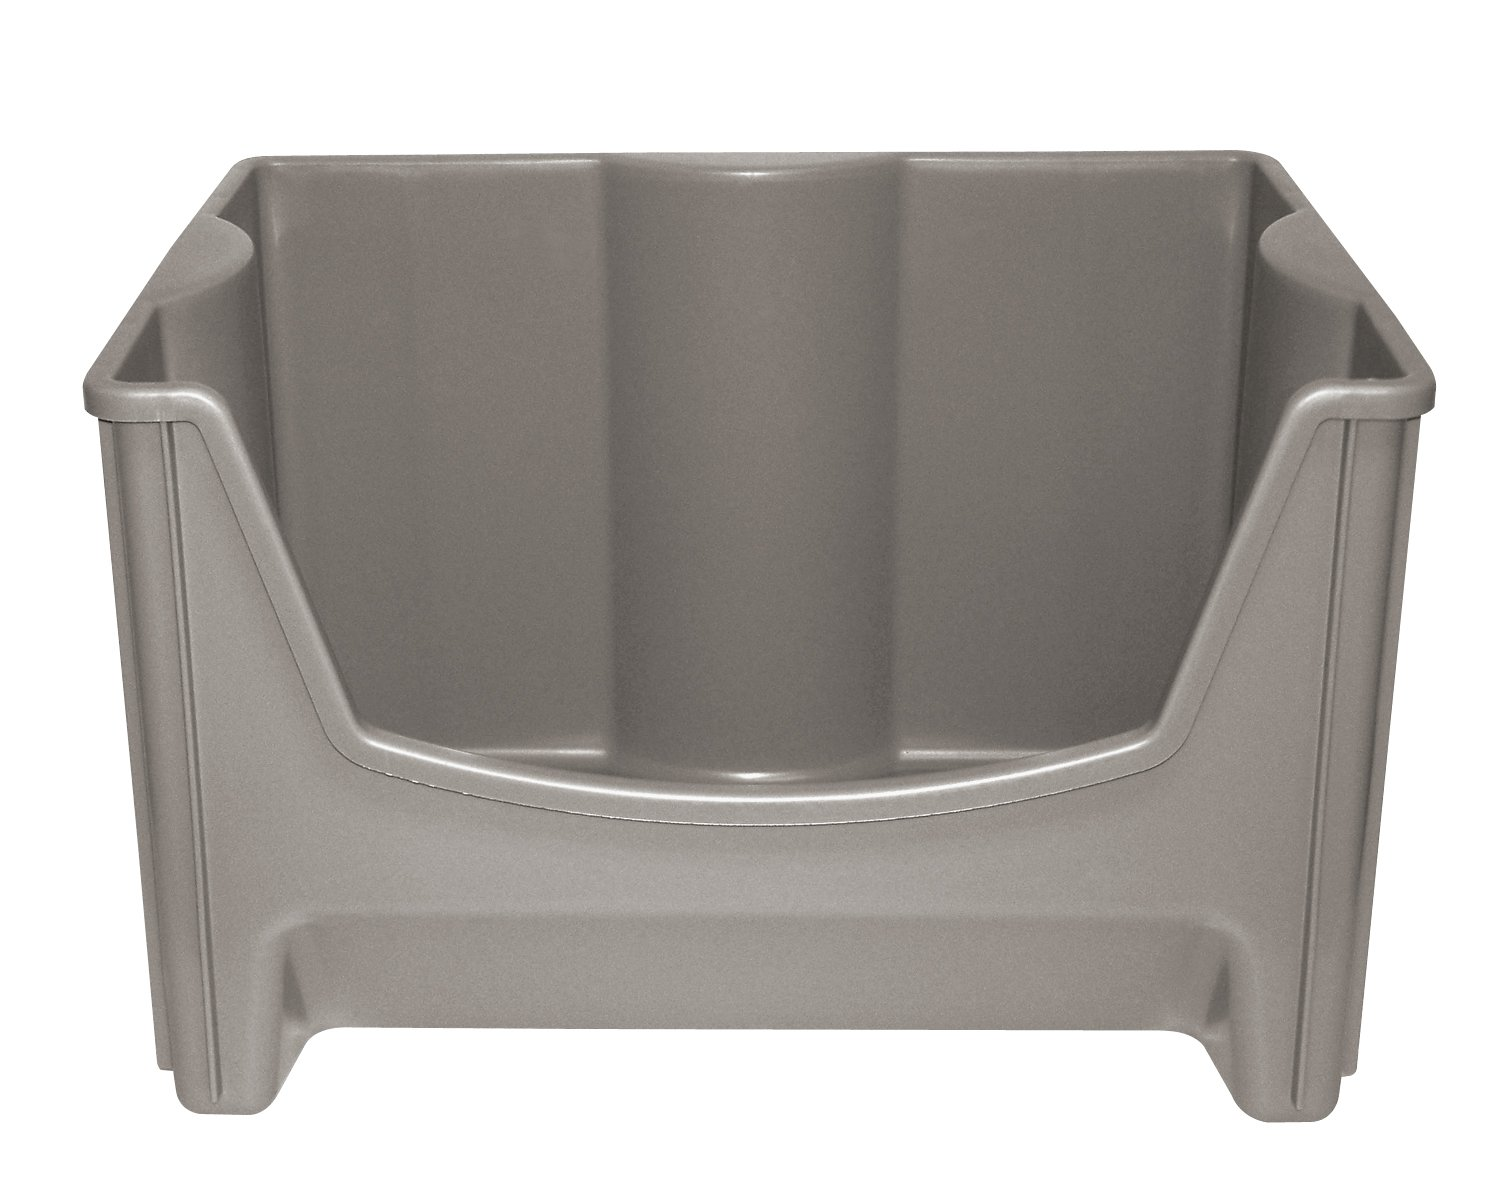 Amazon.com: United Solutions SB0016 Taupe Plastic Stacking Storage Bin   Large  Stacking/Nesting/Organizing Plastic Box In Taupe: Home U0026 Kitchen